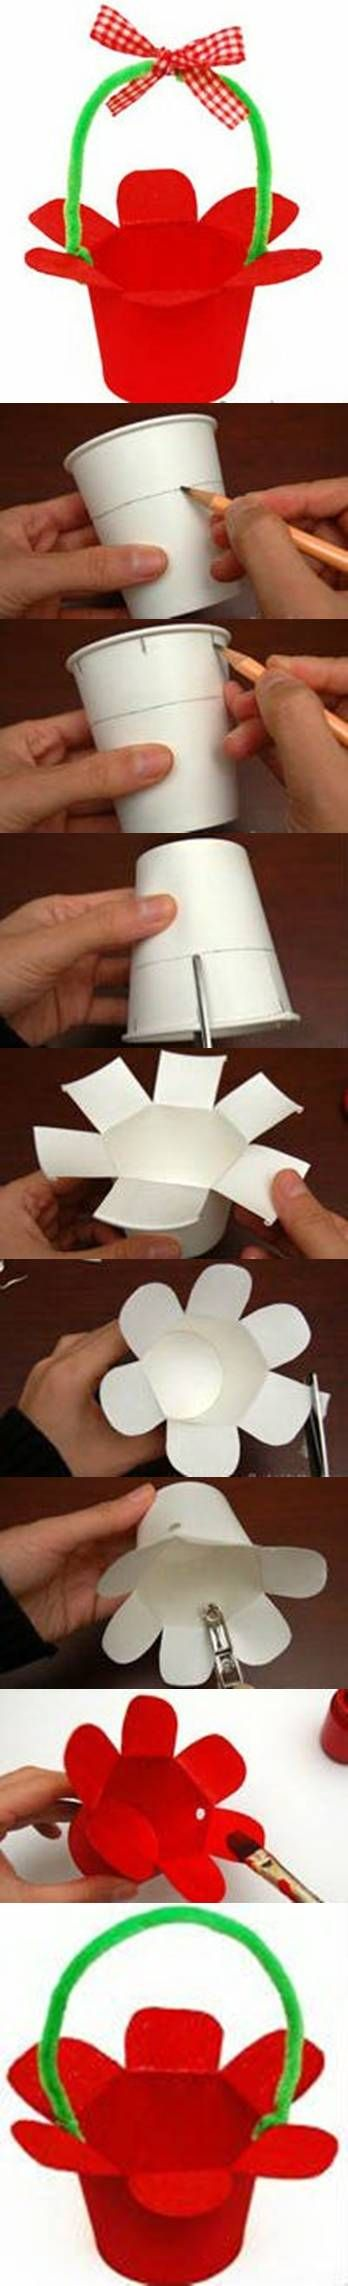 Diy paper cup baskette idea for kids at easter a craft for diy paper cup baskette idea for kids at easter a craft jeuxipadfo Image collections